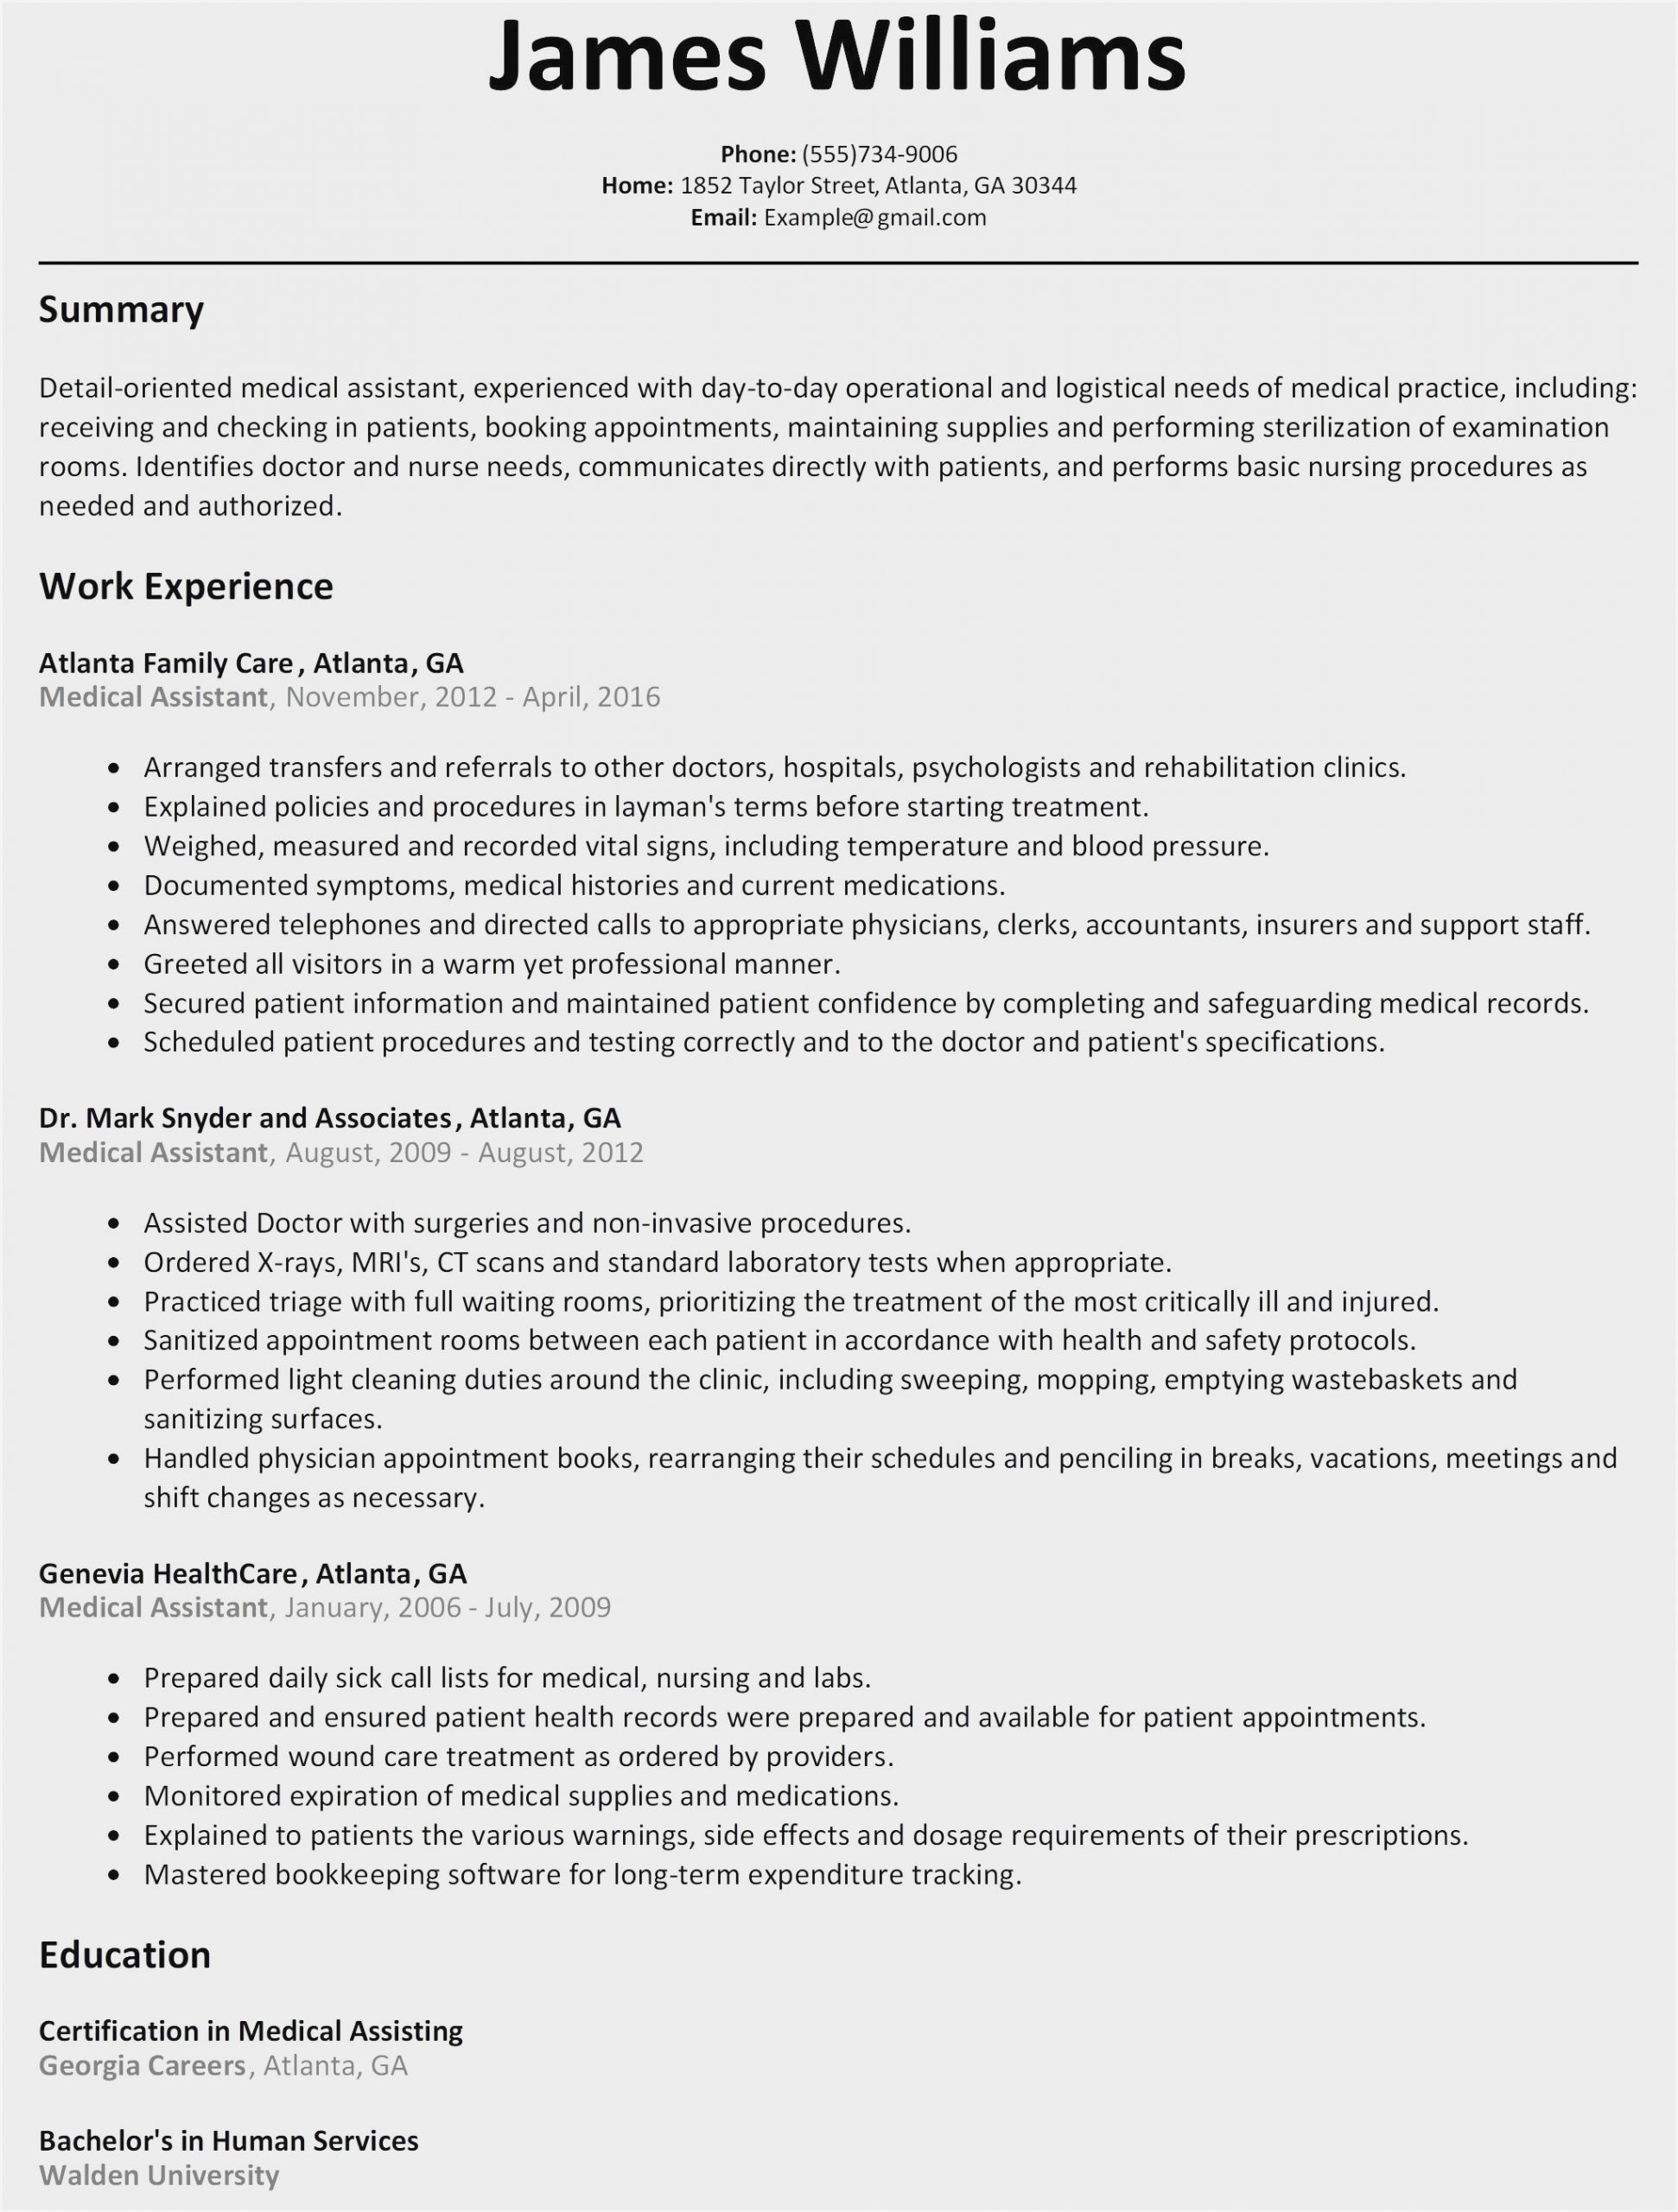 best resume writing services us all industries writers expert coloring professional Resume Best Resume Writers 2020